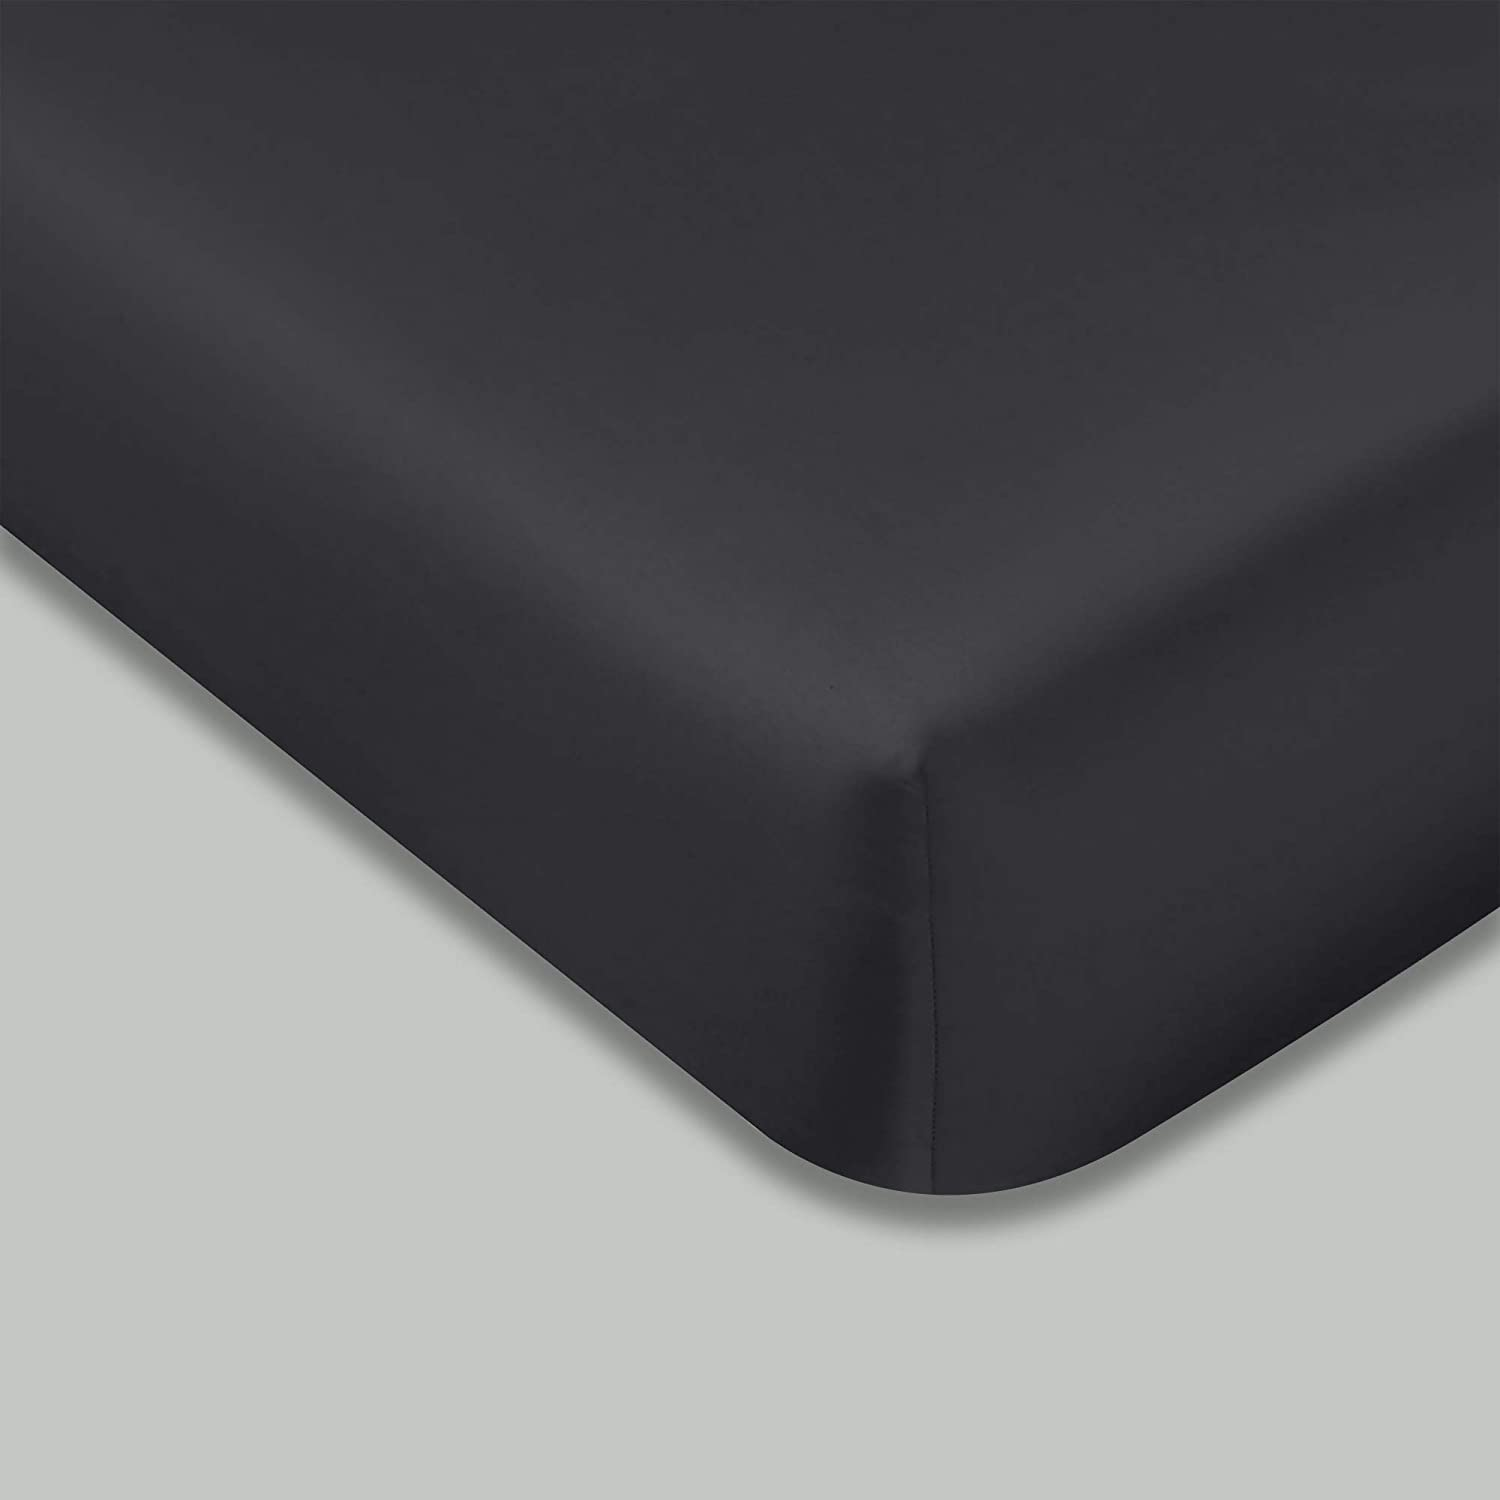 """400 TC GOTS Certified 100% Organic Cotton Twin Sateen Weave Fitted Sheet - Fits Mattress Up to 15"""" Deep Pocket - Supremely Soft & Shiny Close to Nature Biodegradable Sheet - Dark Grey - Twin Fitted"""